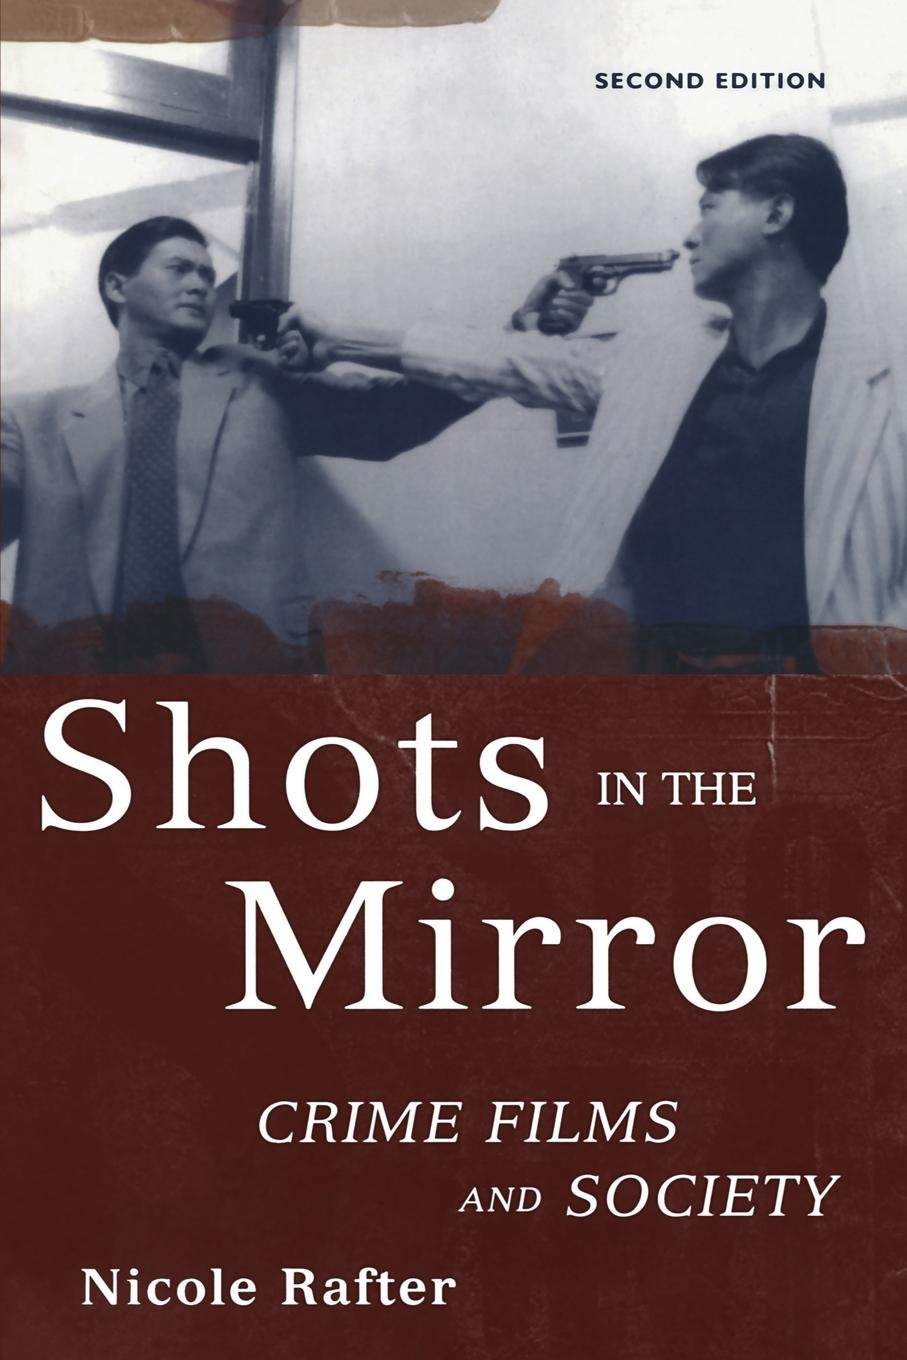 Shots in the Mirror: Crime Films and Society PDF